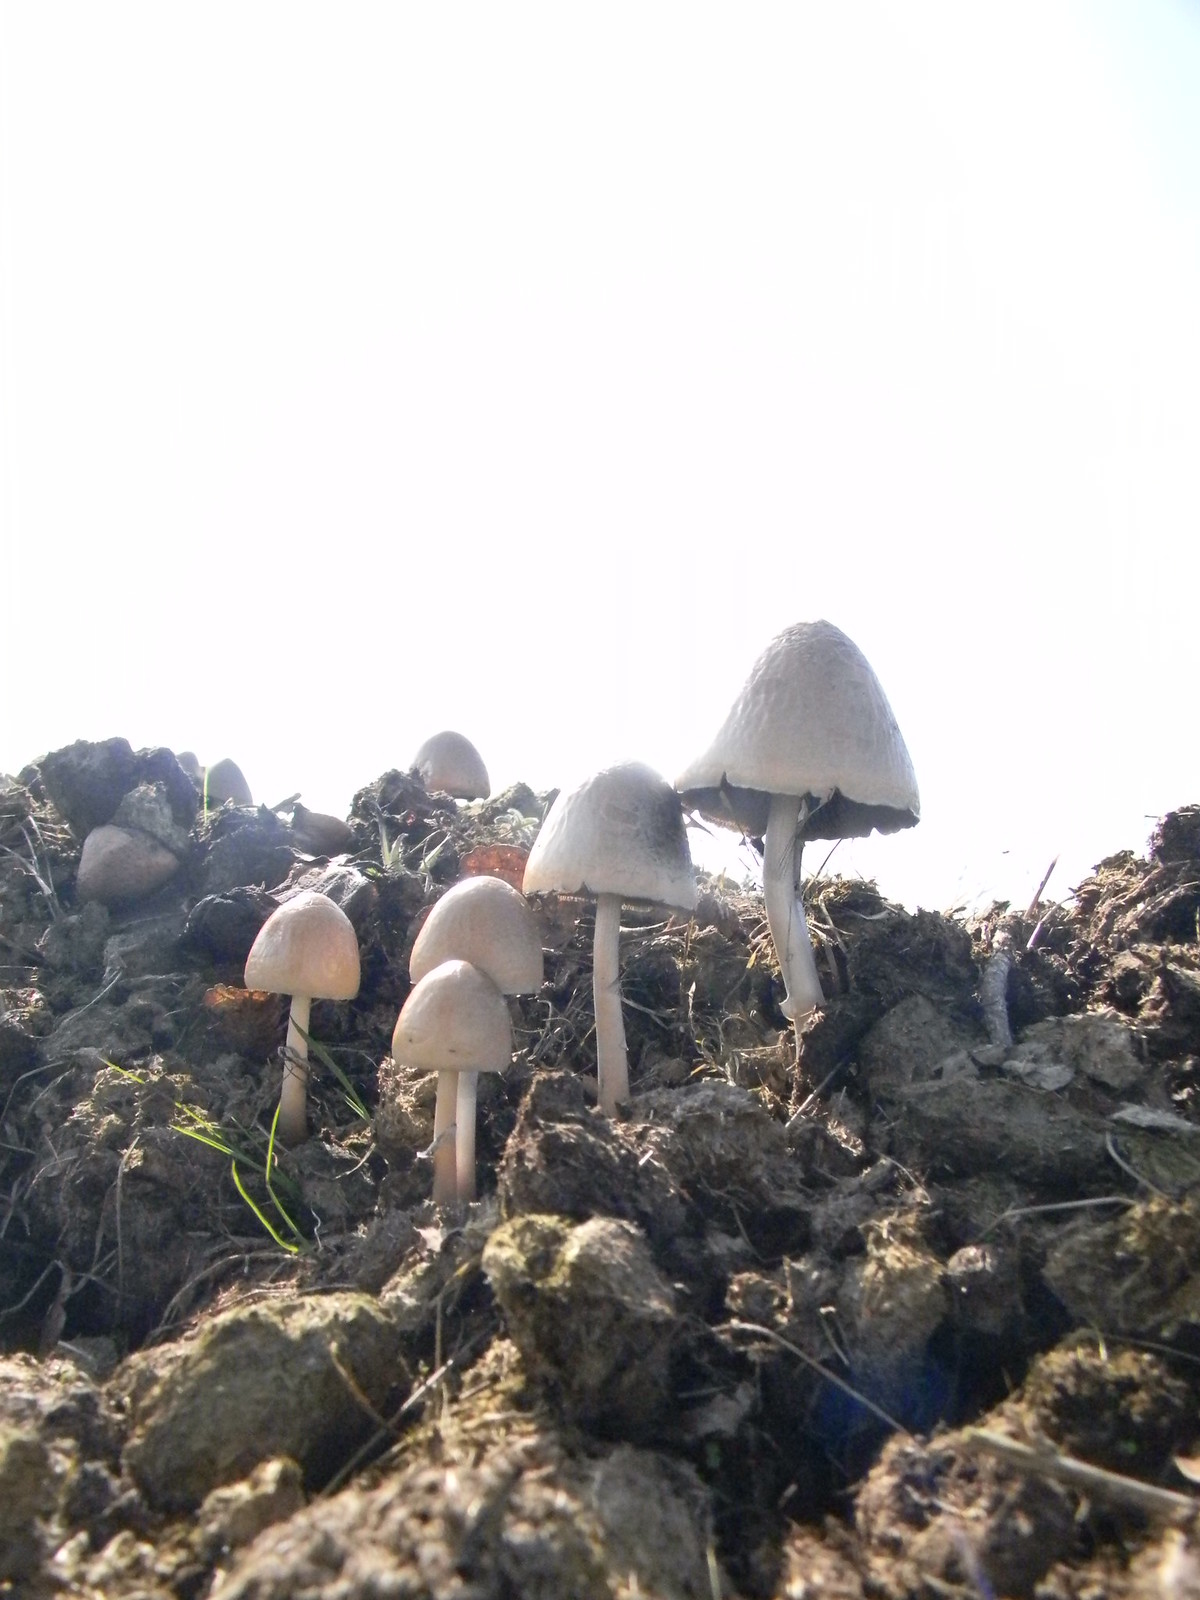 Mushrooms on a manure heap Great Chesterford to Newport